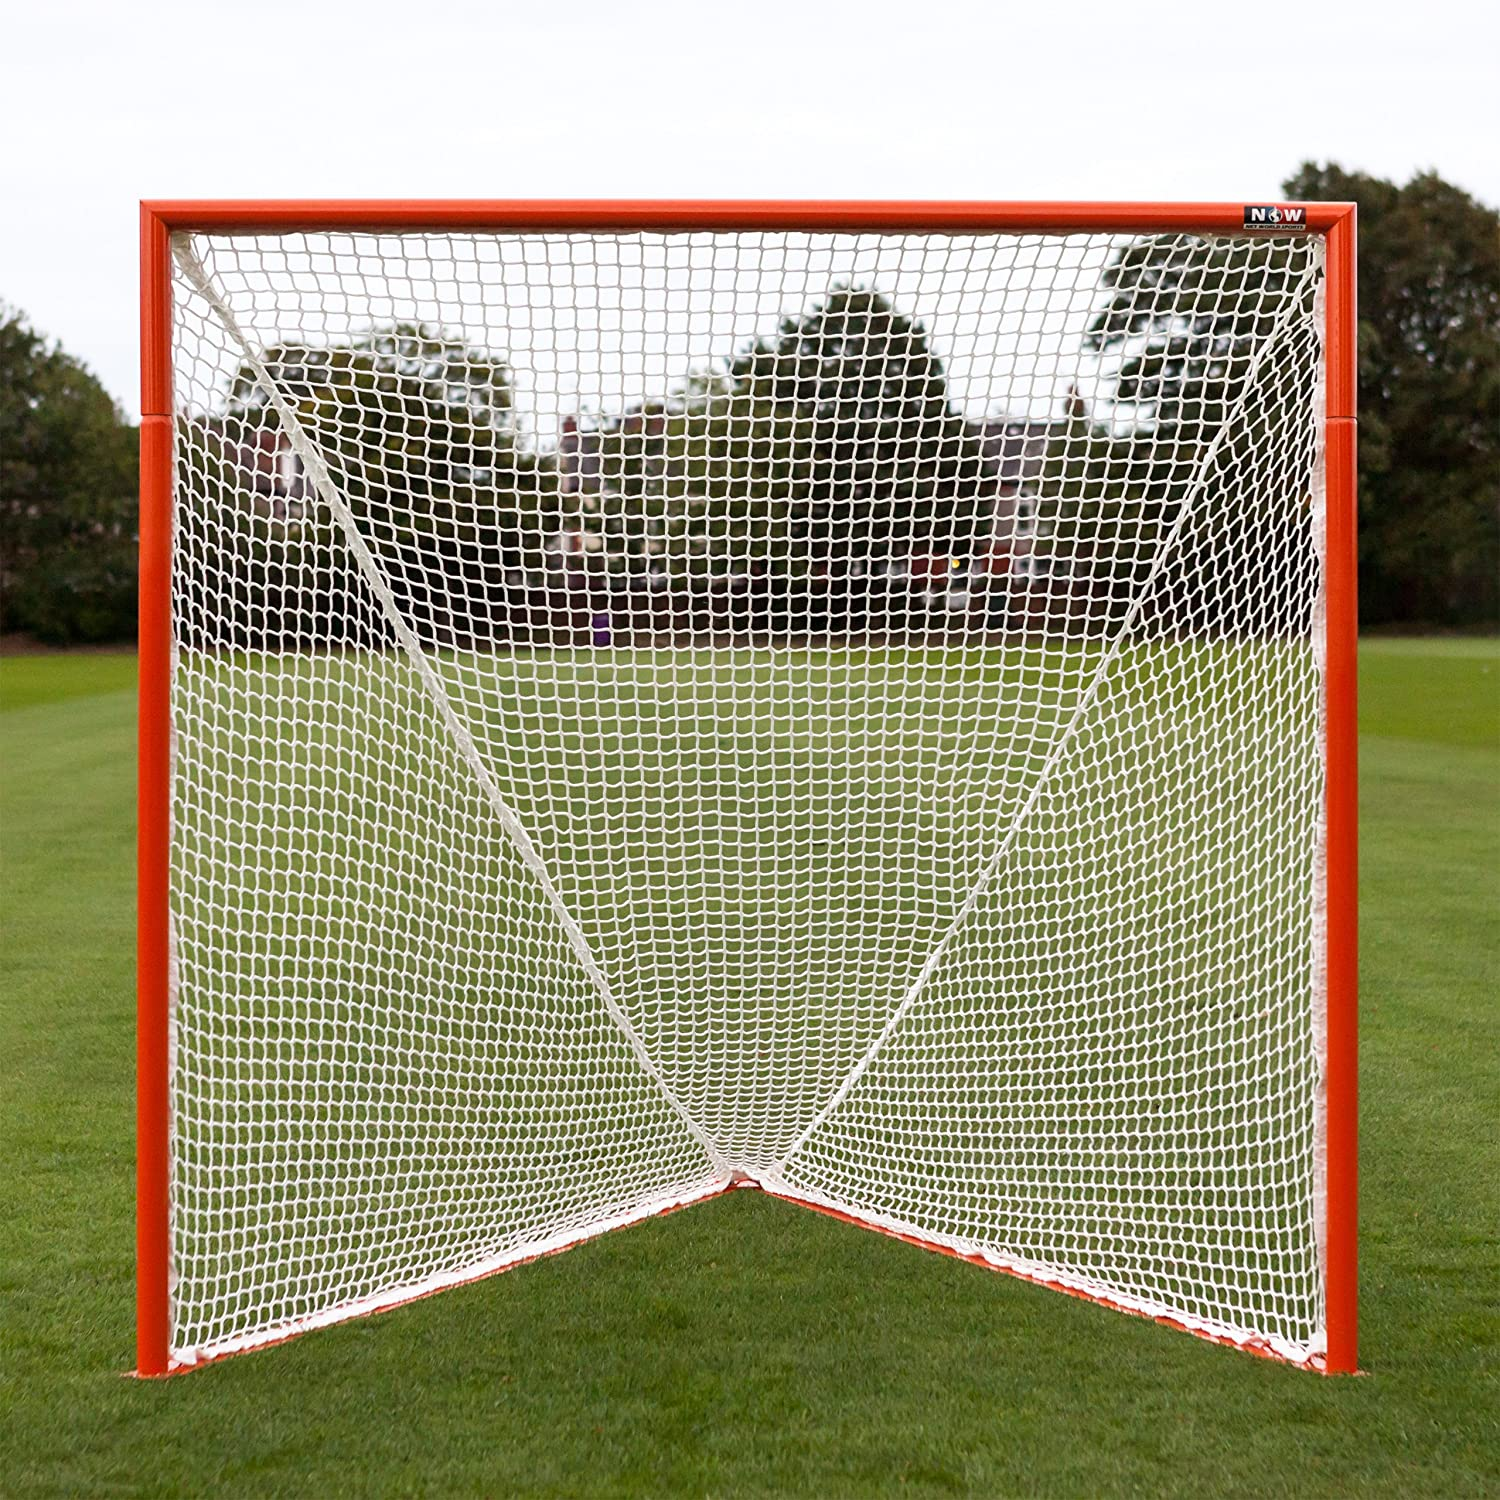 amazon com professional lacrosse goal 6ft x 6ft ncaa